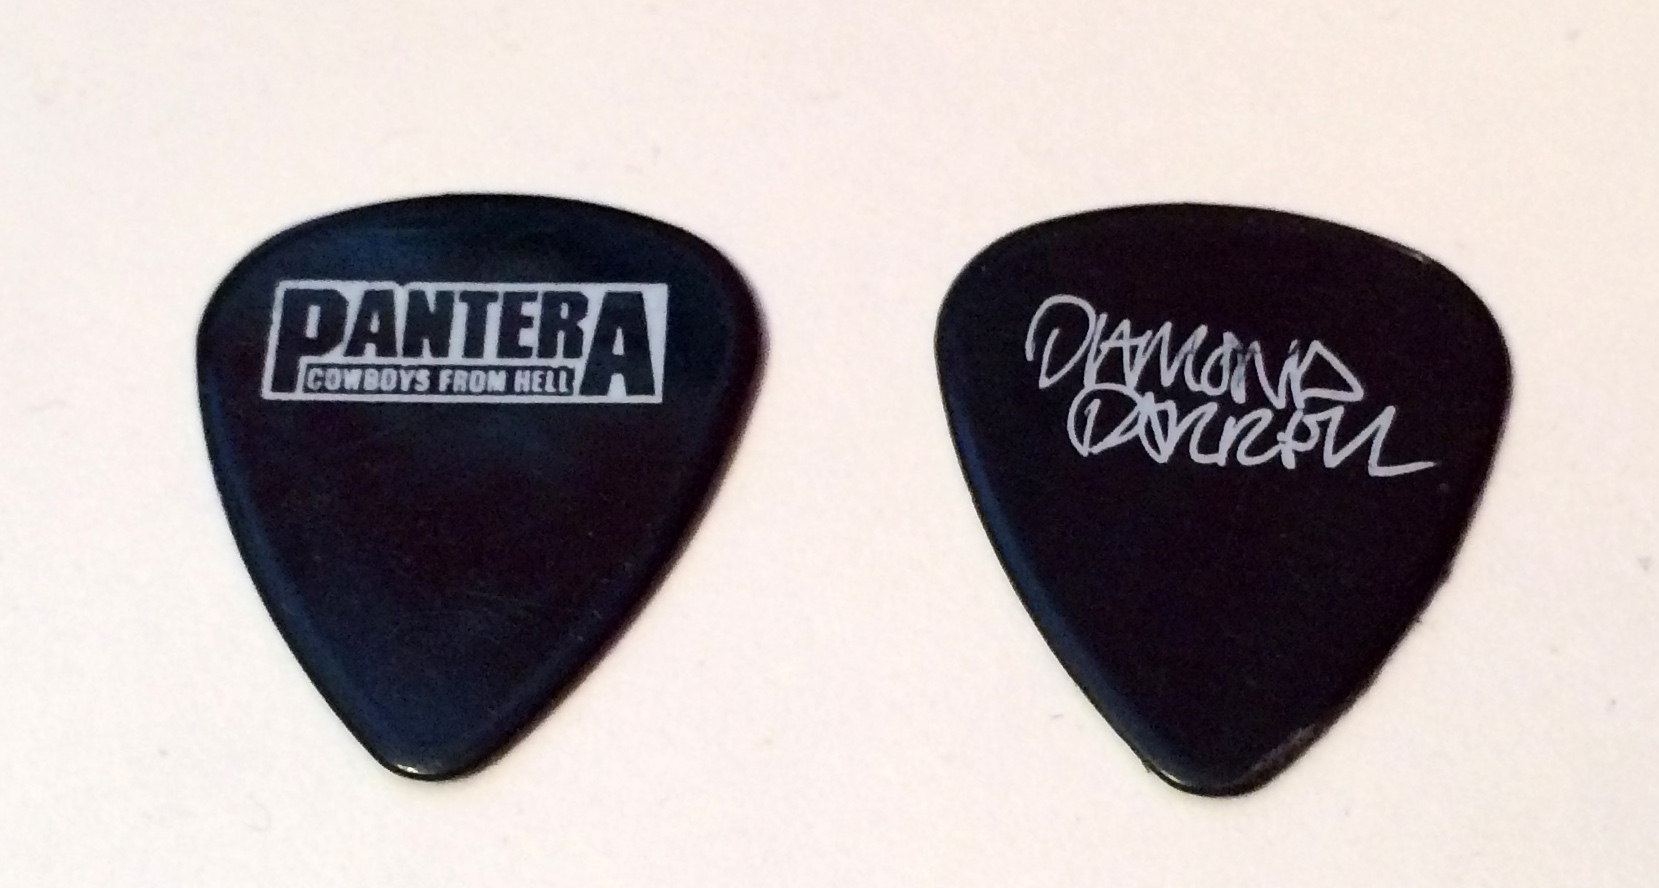 Diamond Darrell (Pantera) guitar pick